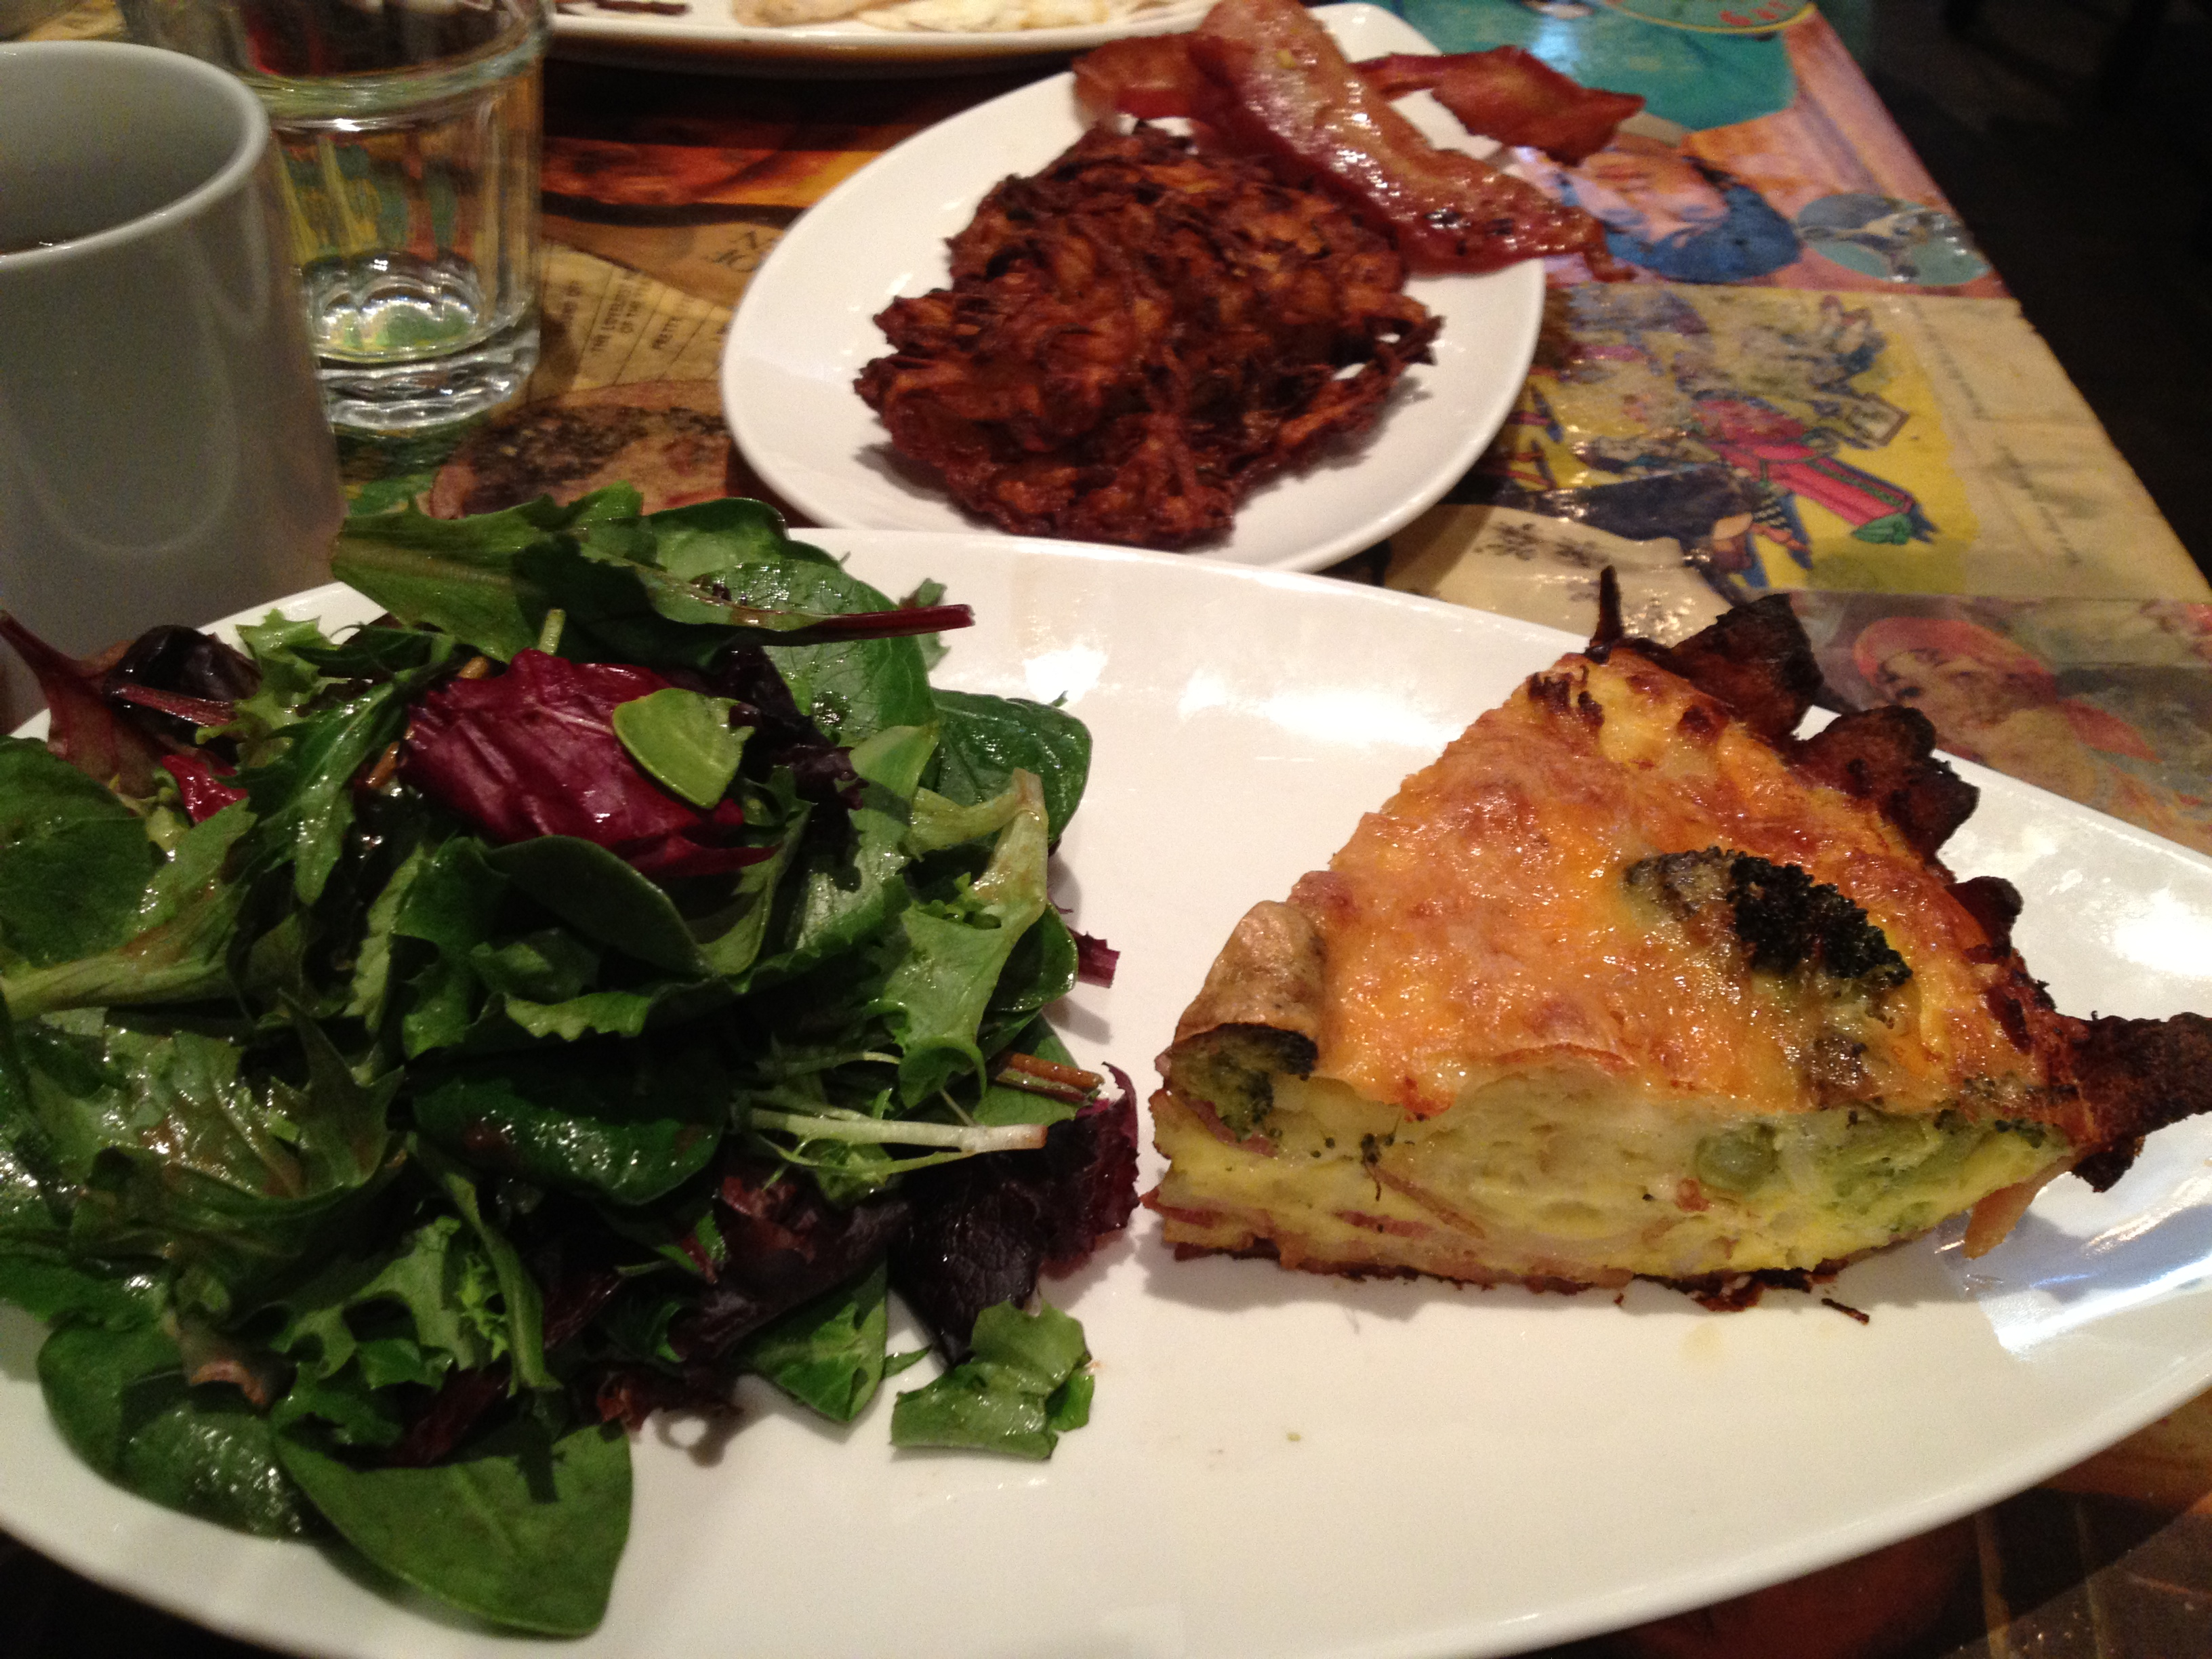 My meal at Cardinal Rule was a Breakfast Pie. A Quiche with a Bacon Crust